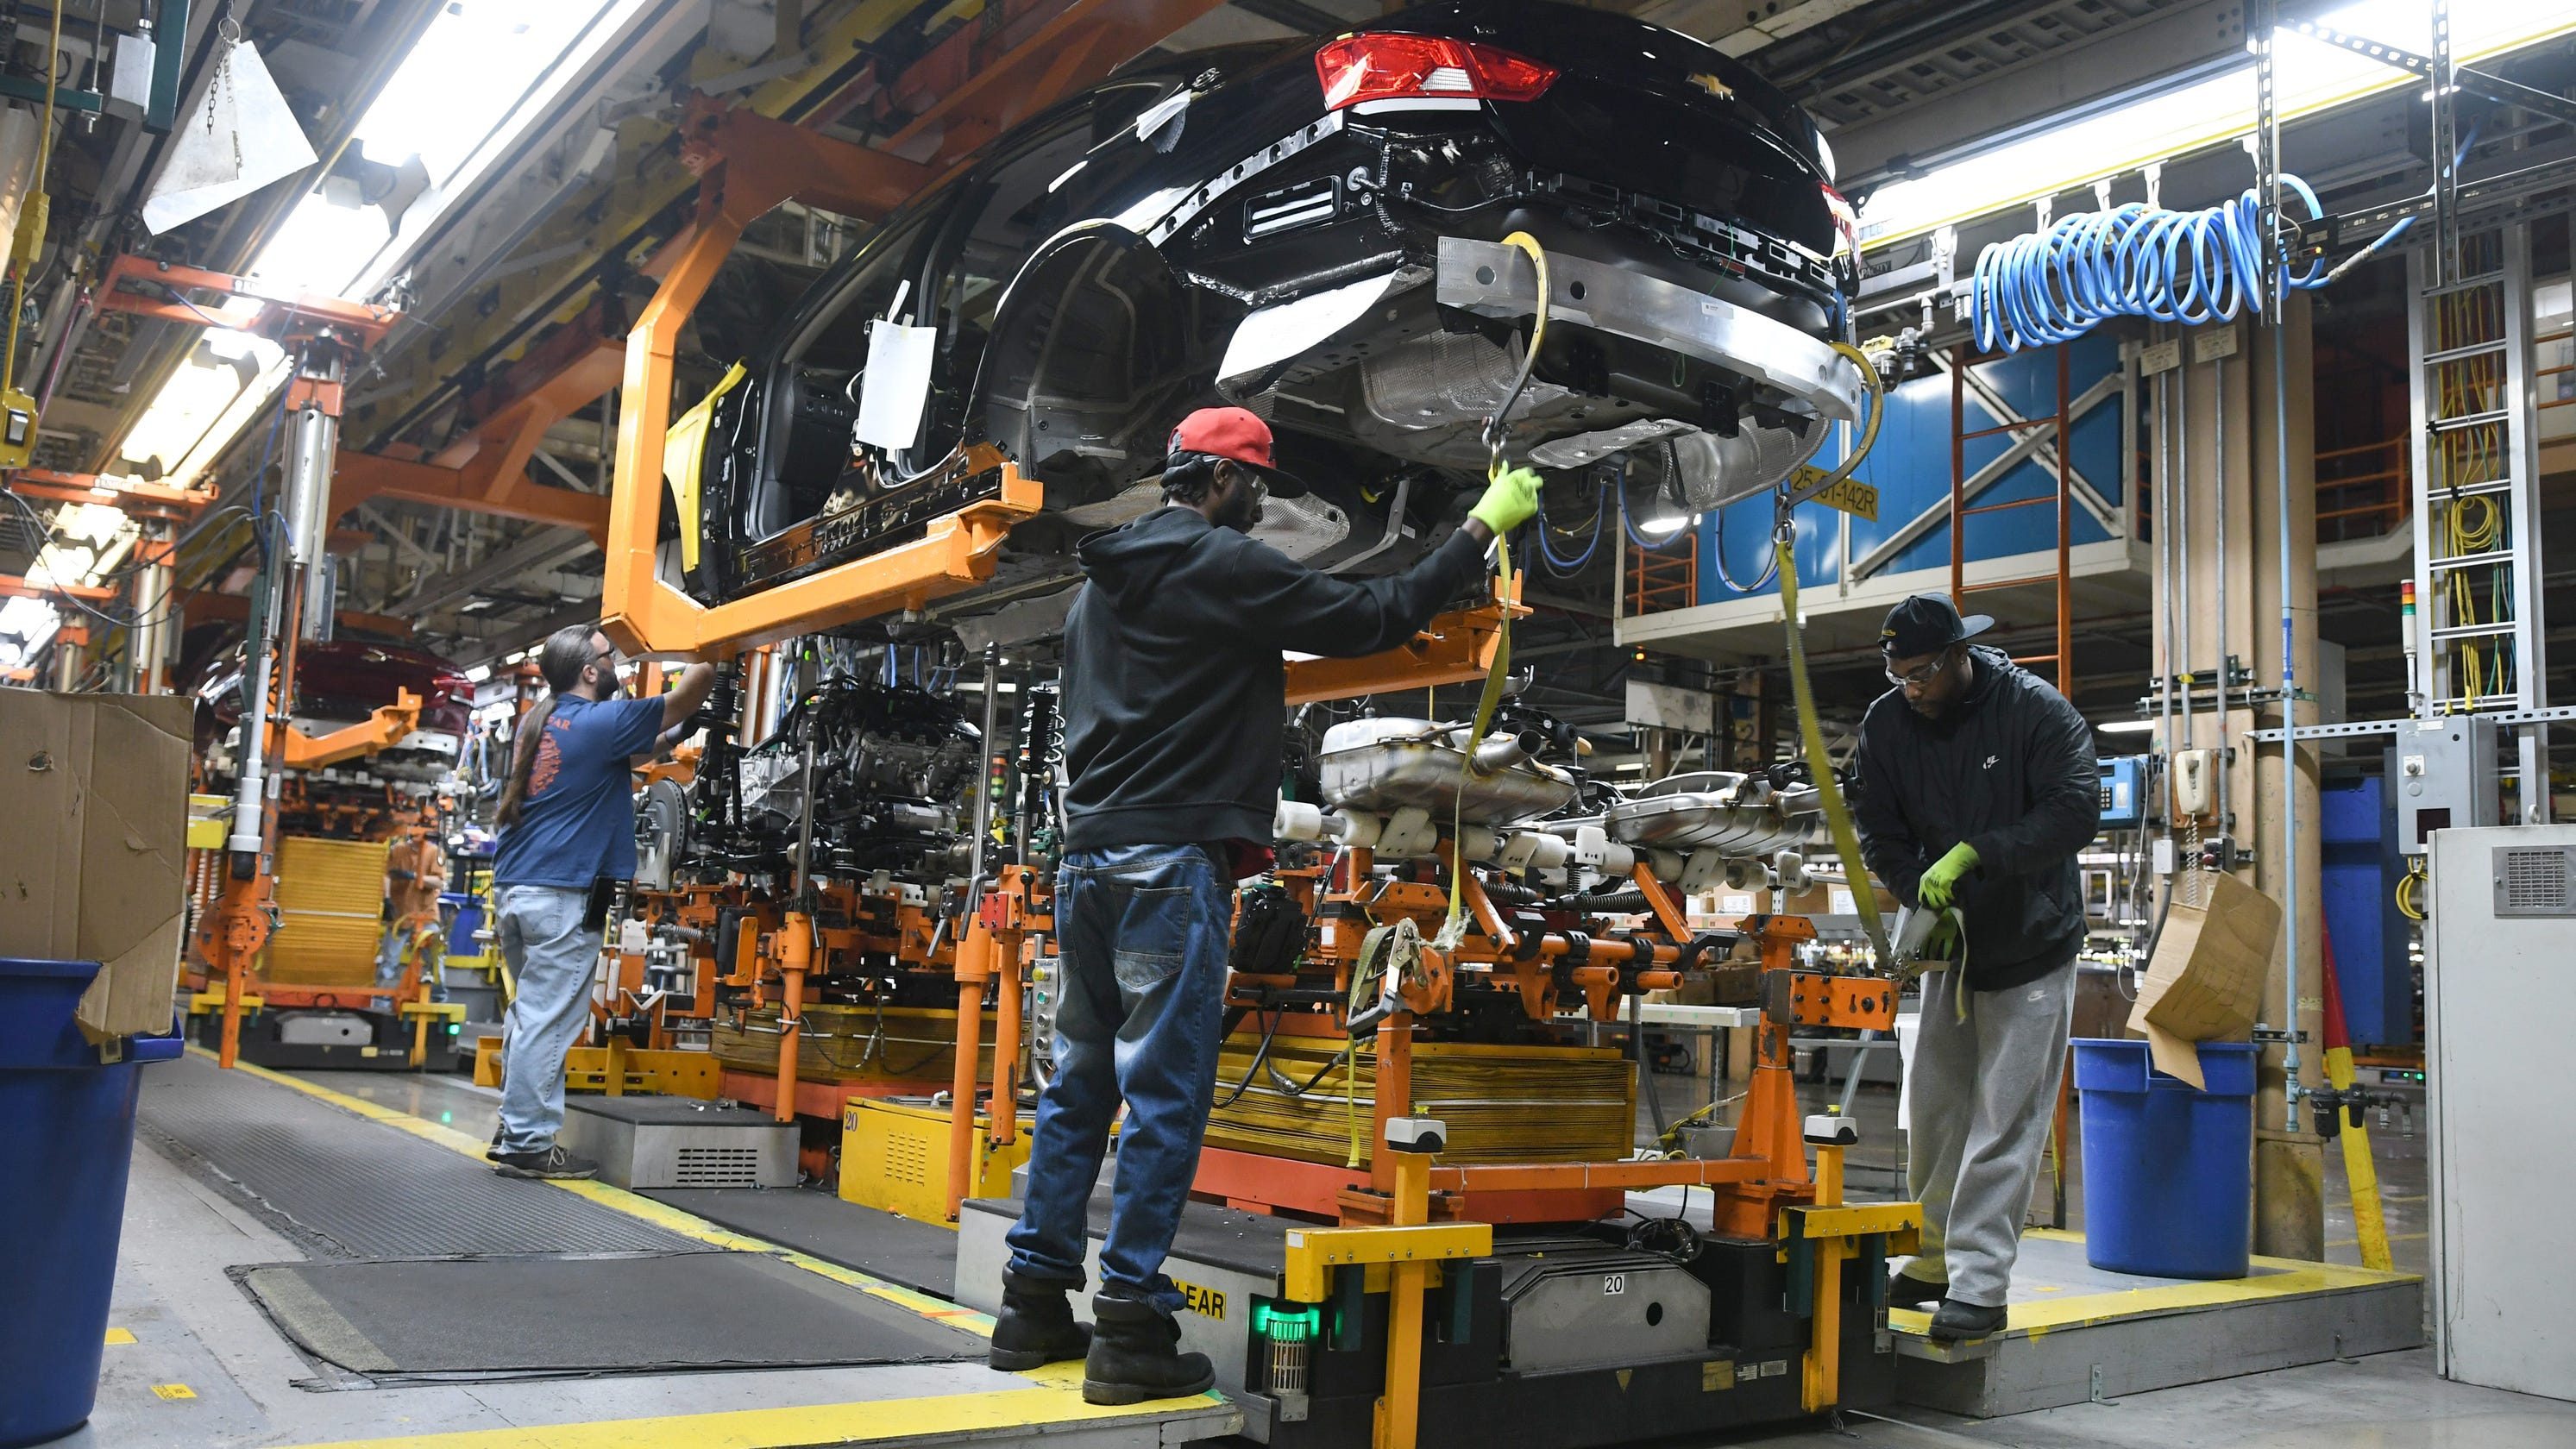 Absenteeism due to virus fears prompts GM to cut 3rd shift at Missouri plant